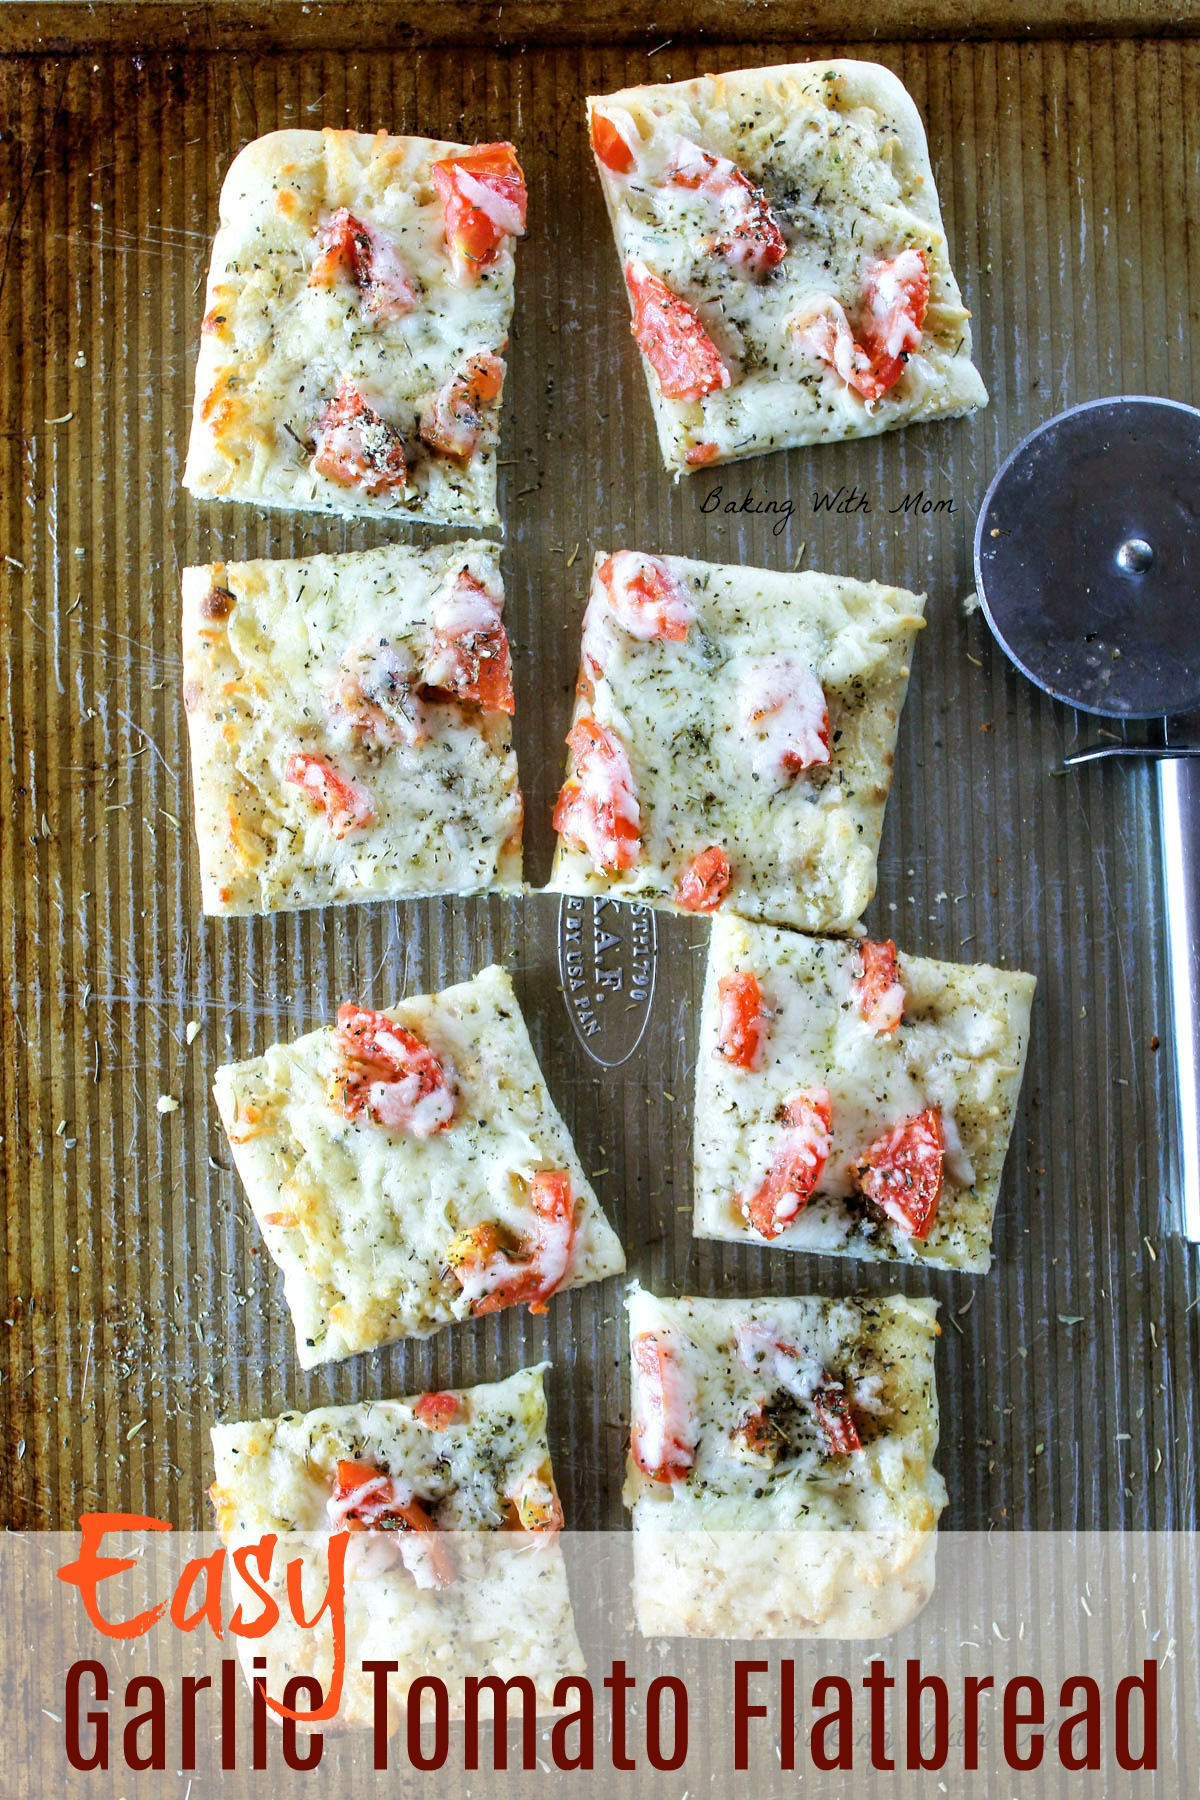 Slices of flatbread on a baking sheet with mozzarella cheese, Italian seasoning and tomatoes